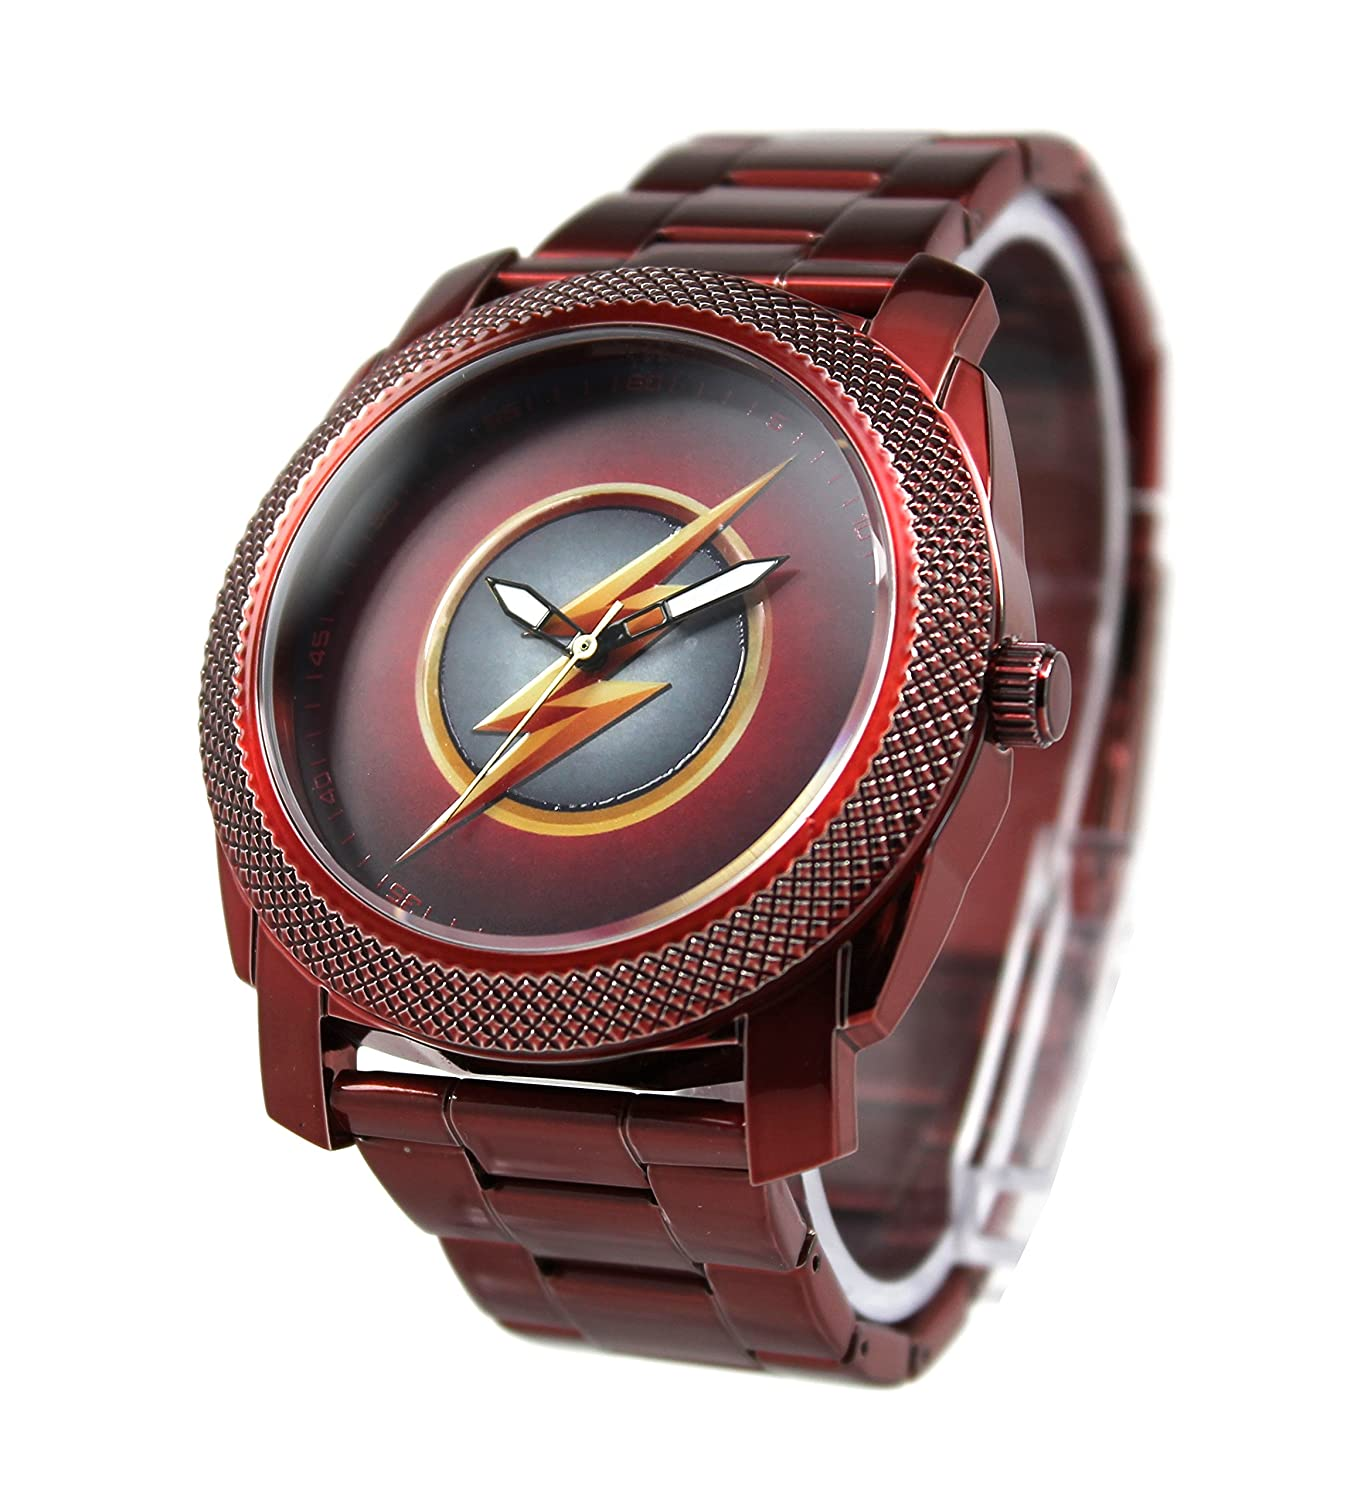 Amazon.com: The Flash CW Stainless Steel Red Watch (FLT8006): Superhero Watches: Watches